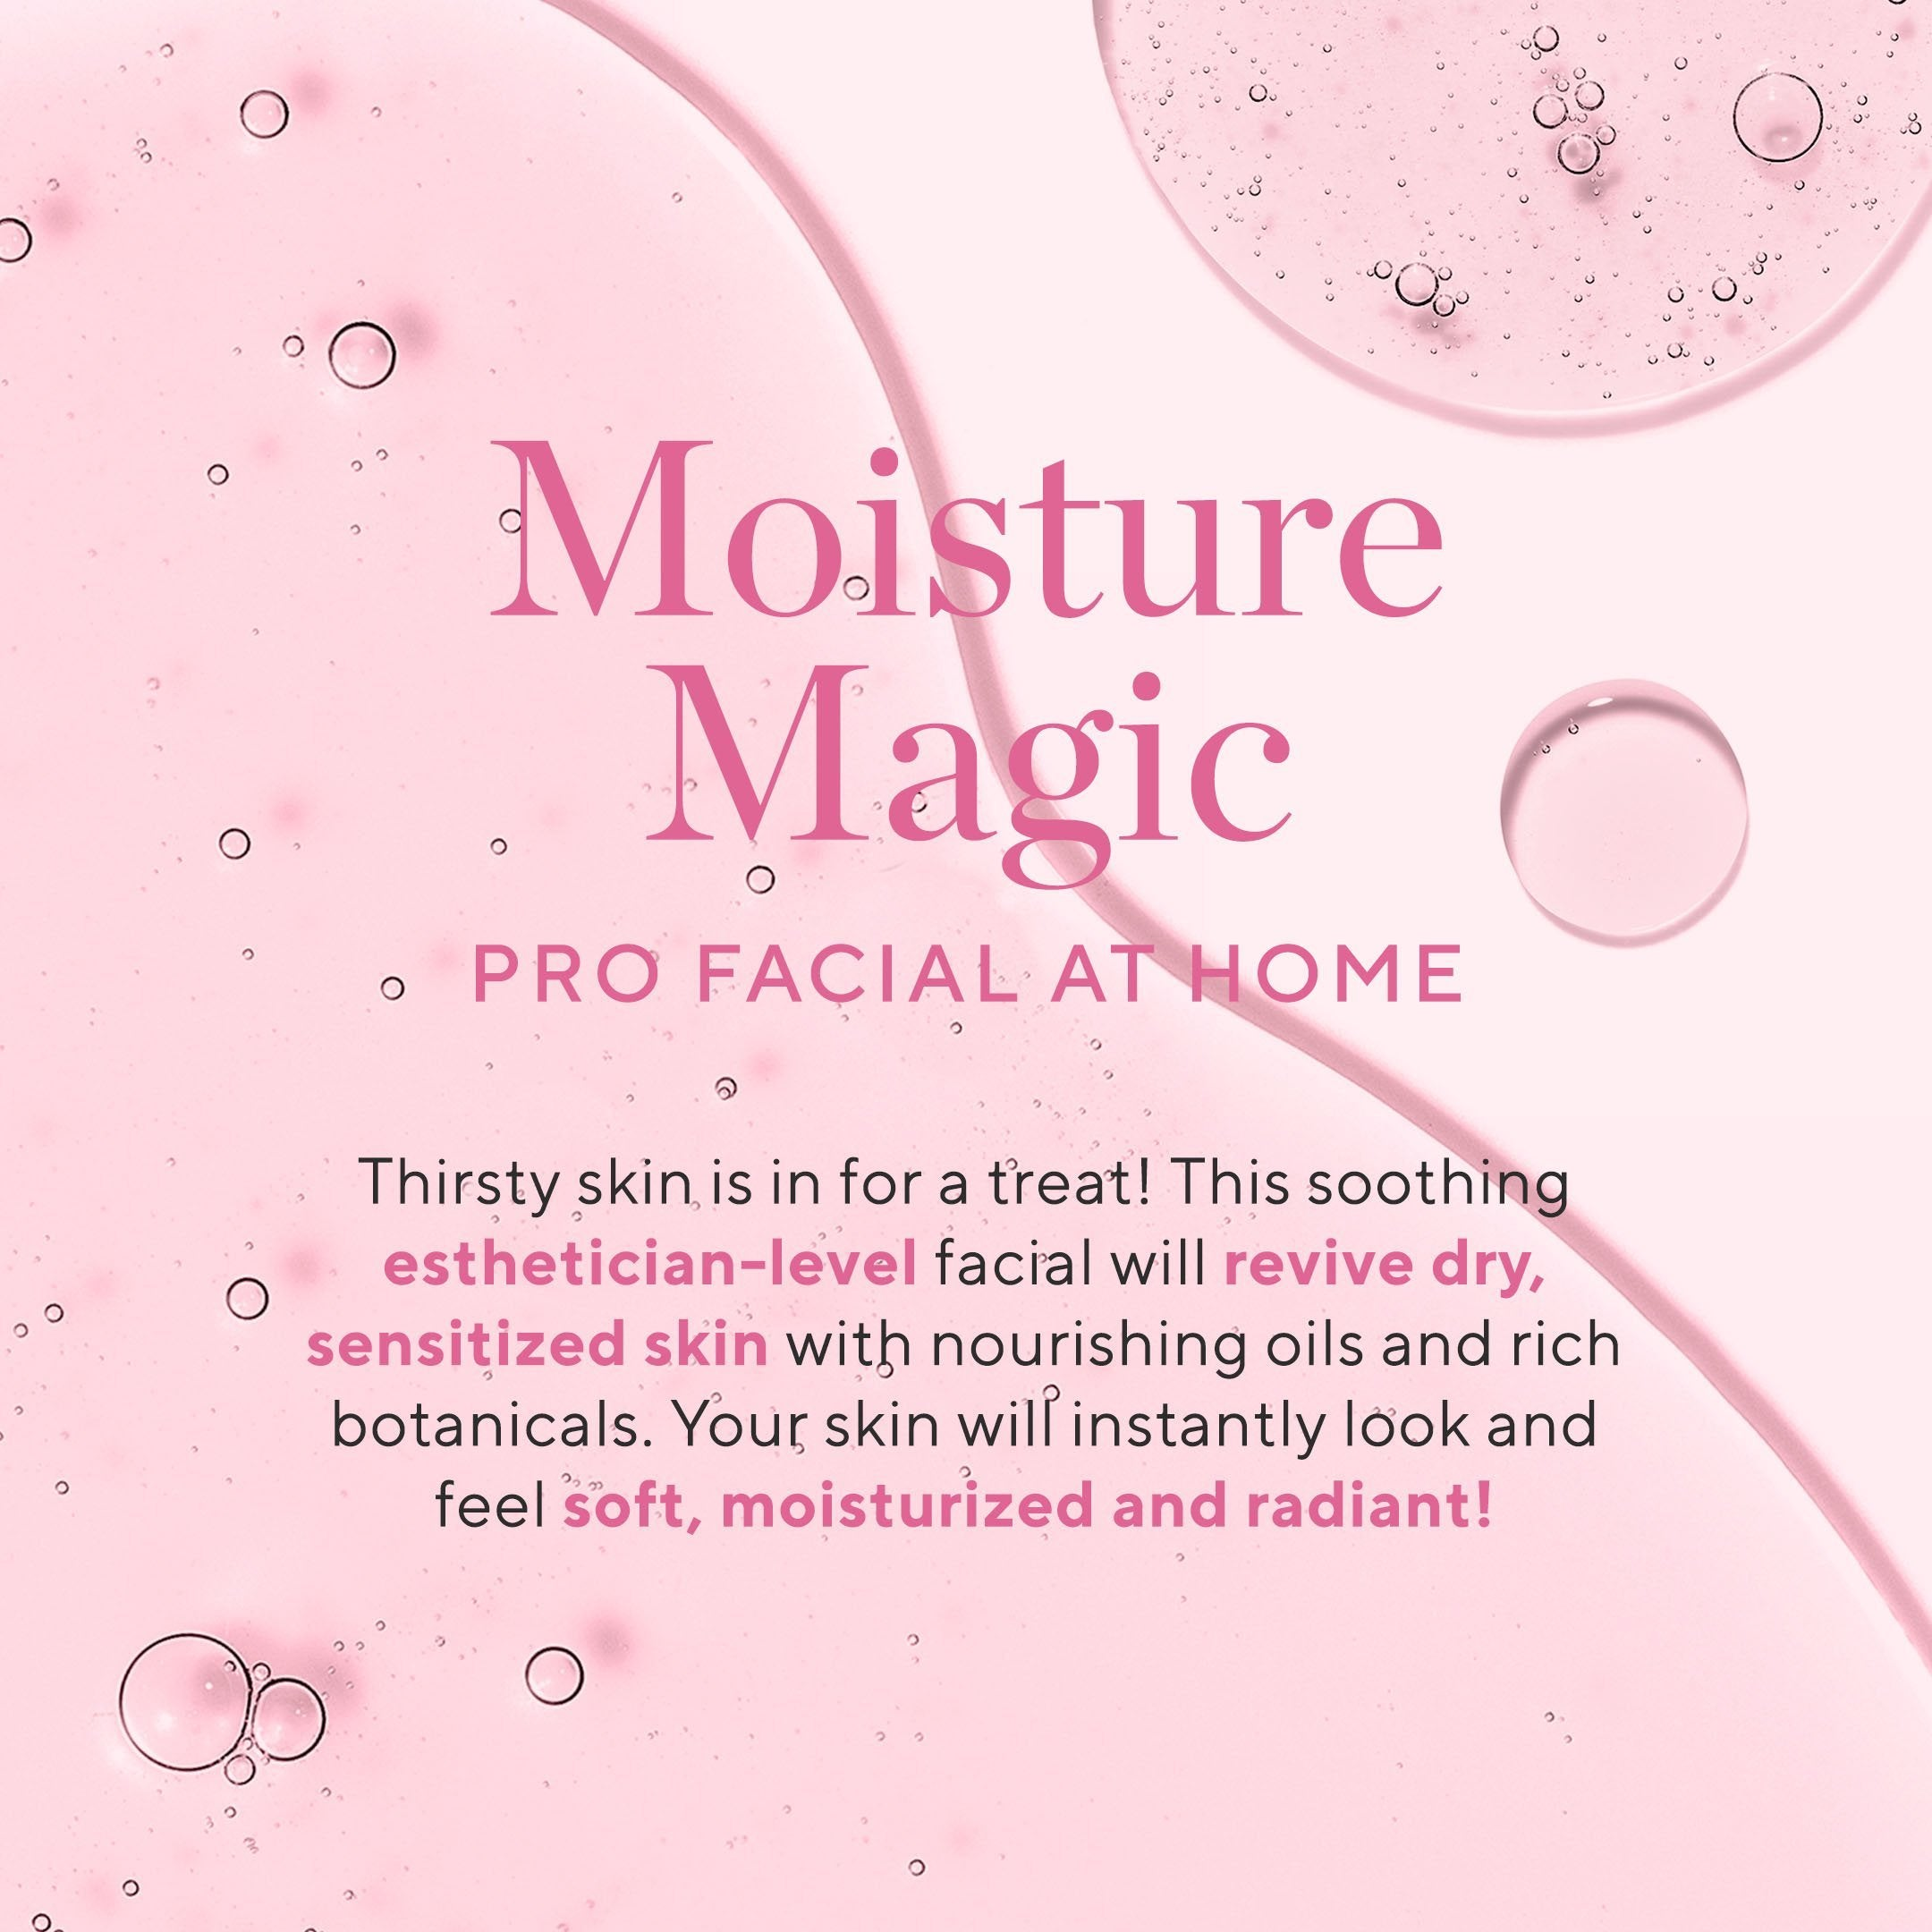 Moisture Magic Facial - HydroPeptide